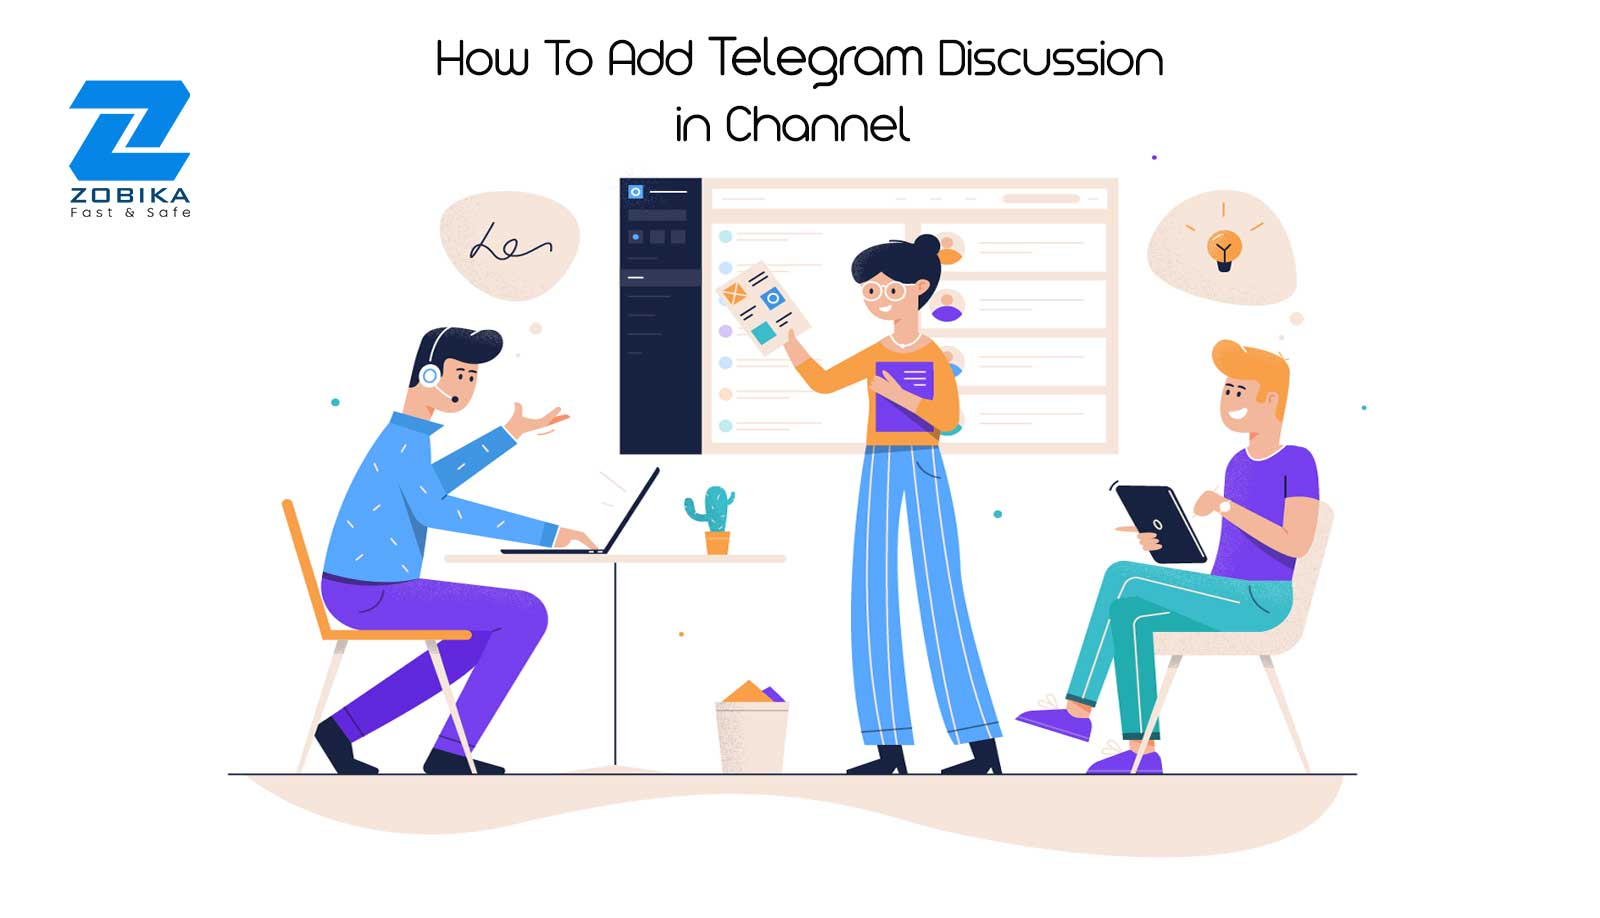 How To Add Telegram Discussion in Channel